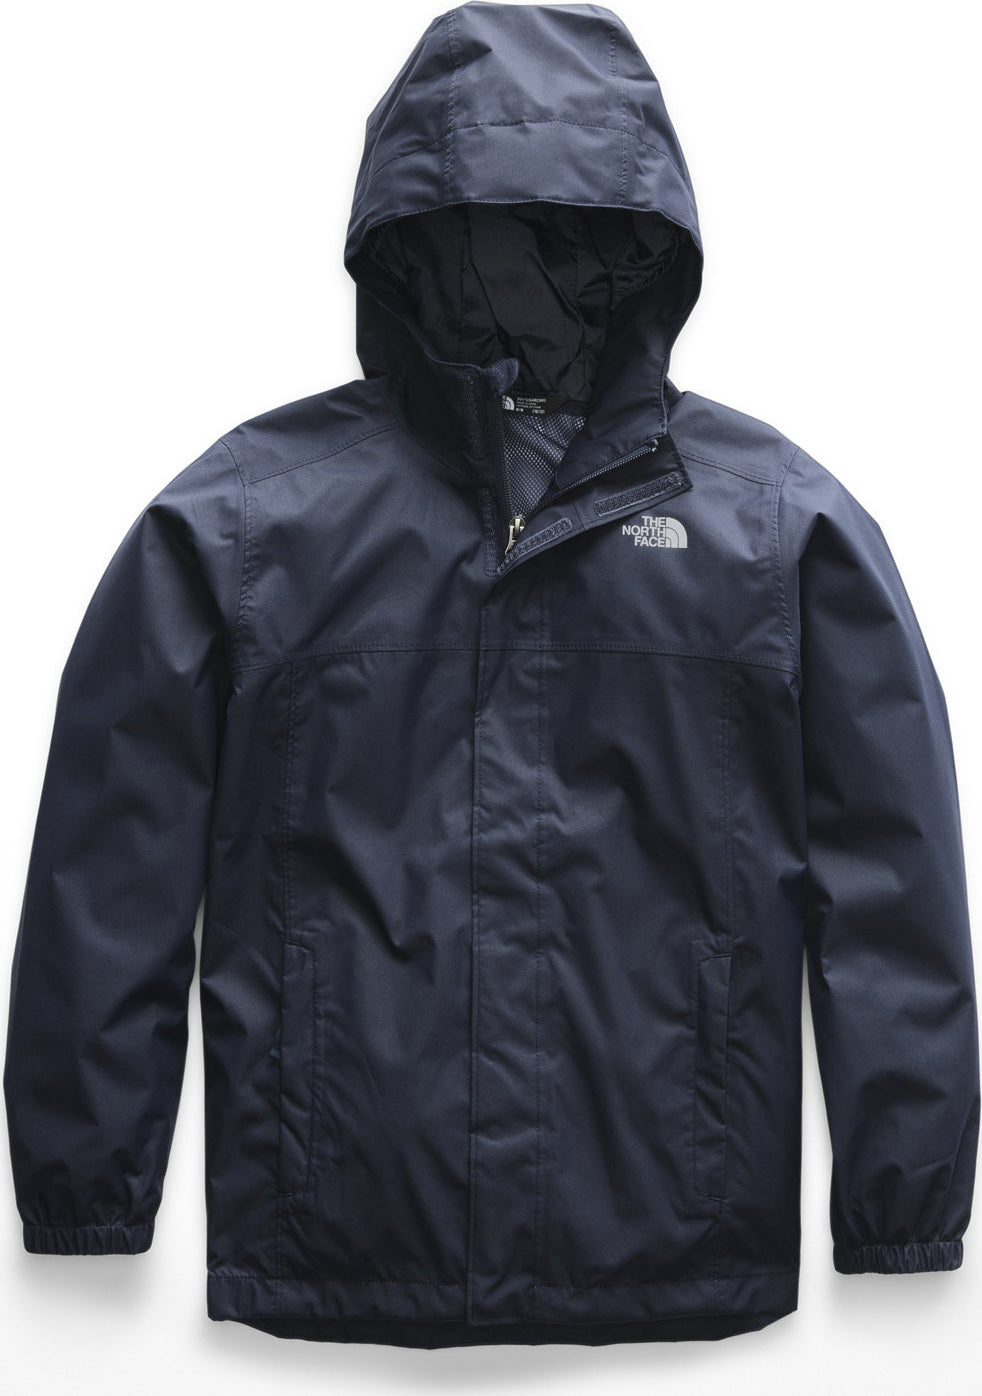 3eff274d4822 The North Face Resolve Reflective Jacket - Boys